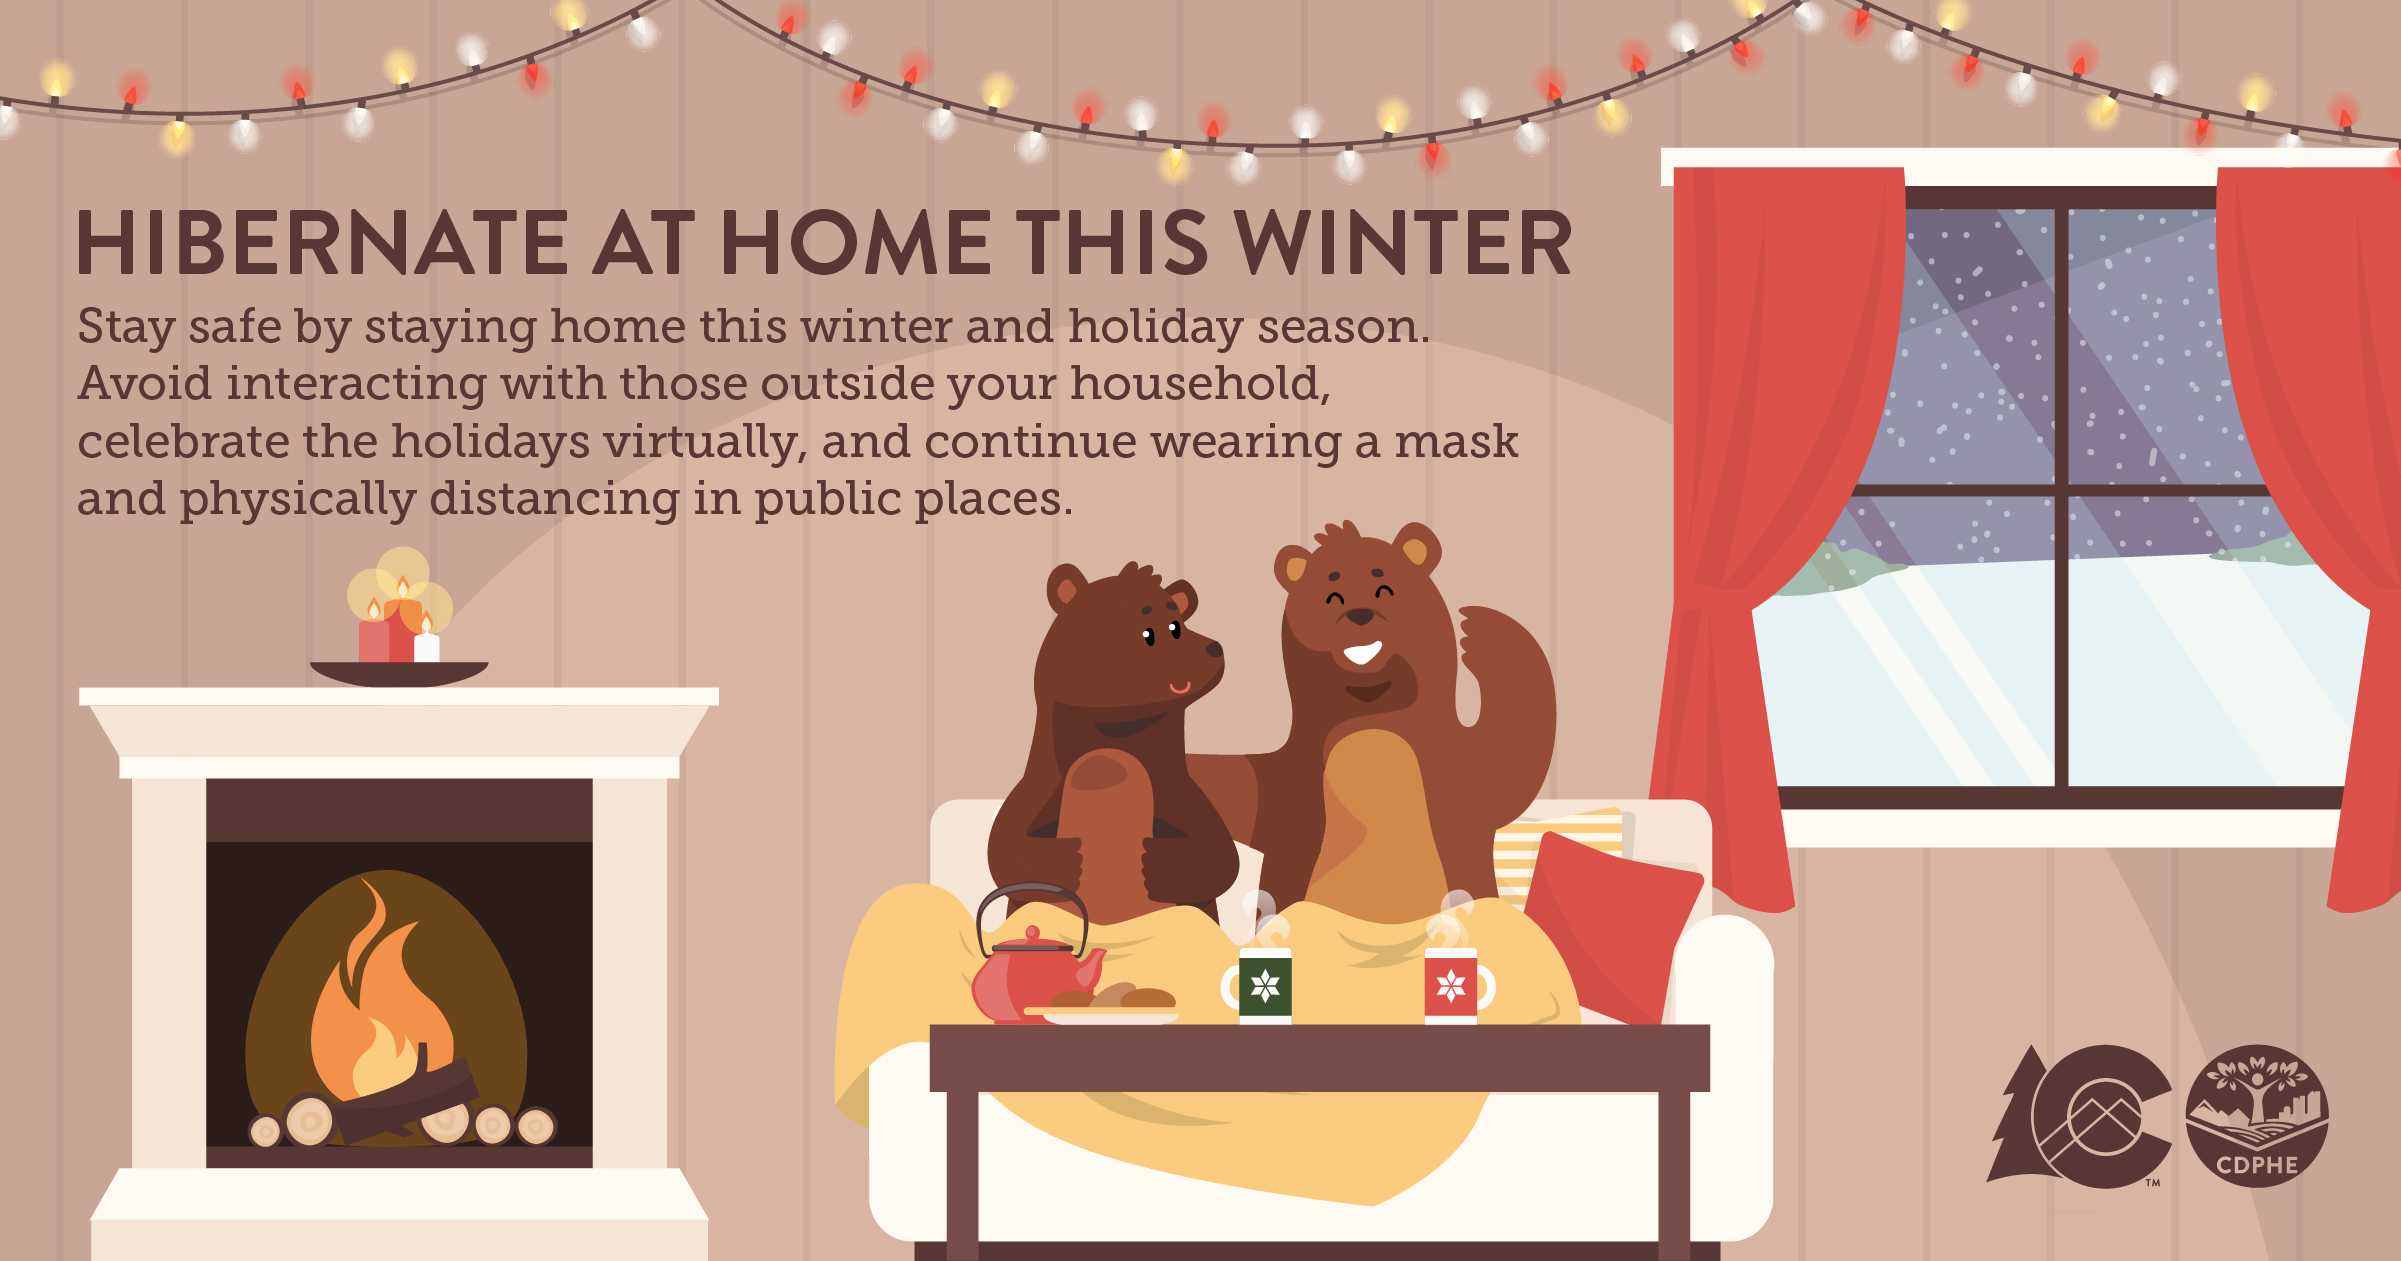 Image of two brown bears sitting on a couch with a yellow blanket drinking tea and eating cookies sitting next to a fireplace with candles on the mantel, it is snowing outside. The text says: Hibernate at home this winter, Stay Safe by staying home this winter and holiday season Avoid interacting with those outside your household celebrate the holidays virtually and continue wearing a mask and physically distancing in public places.